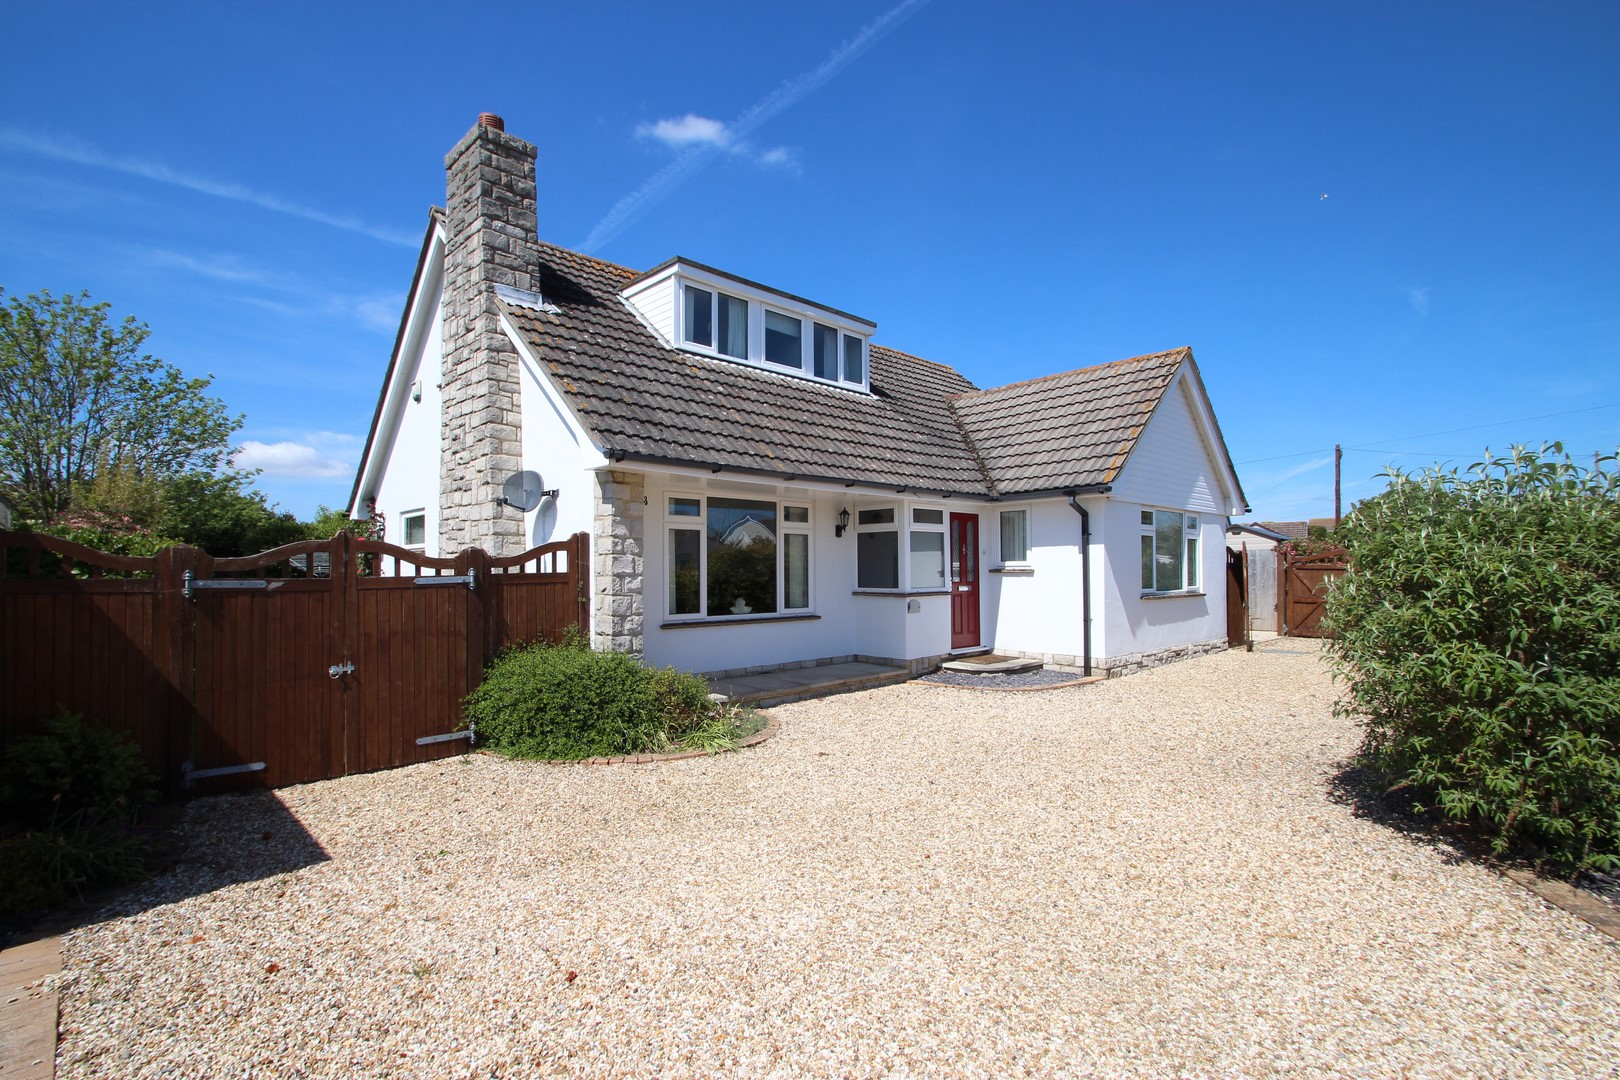 3 Bedroom Chalet in Mudeford